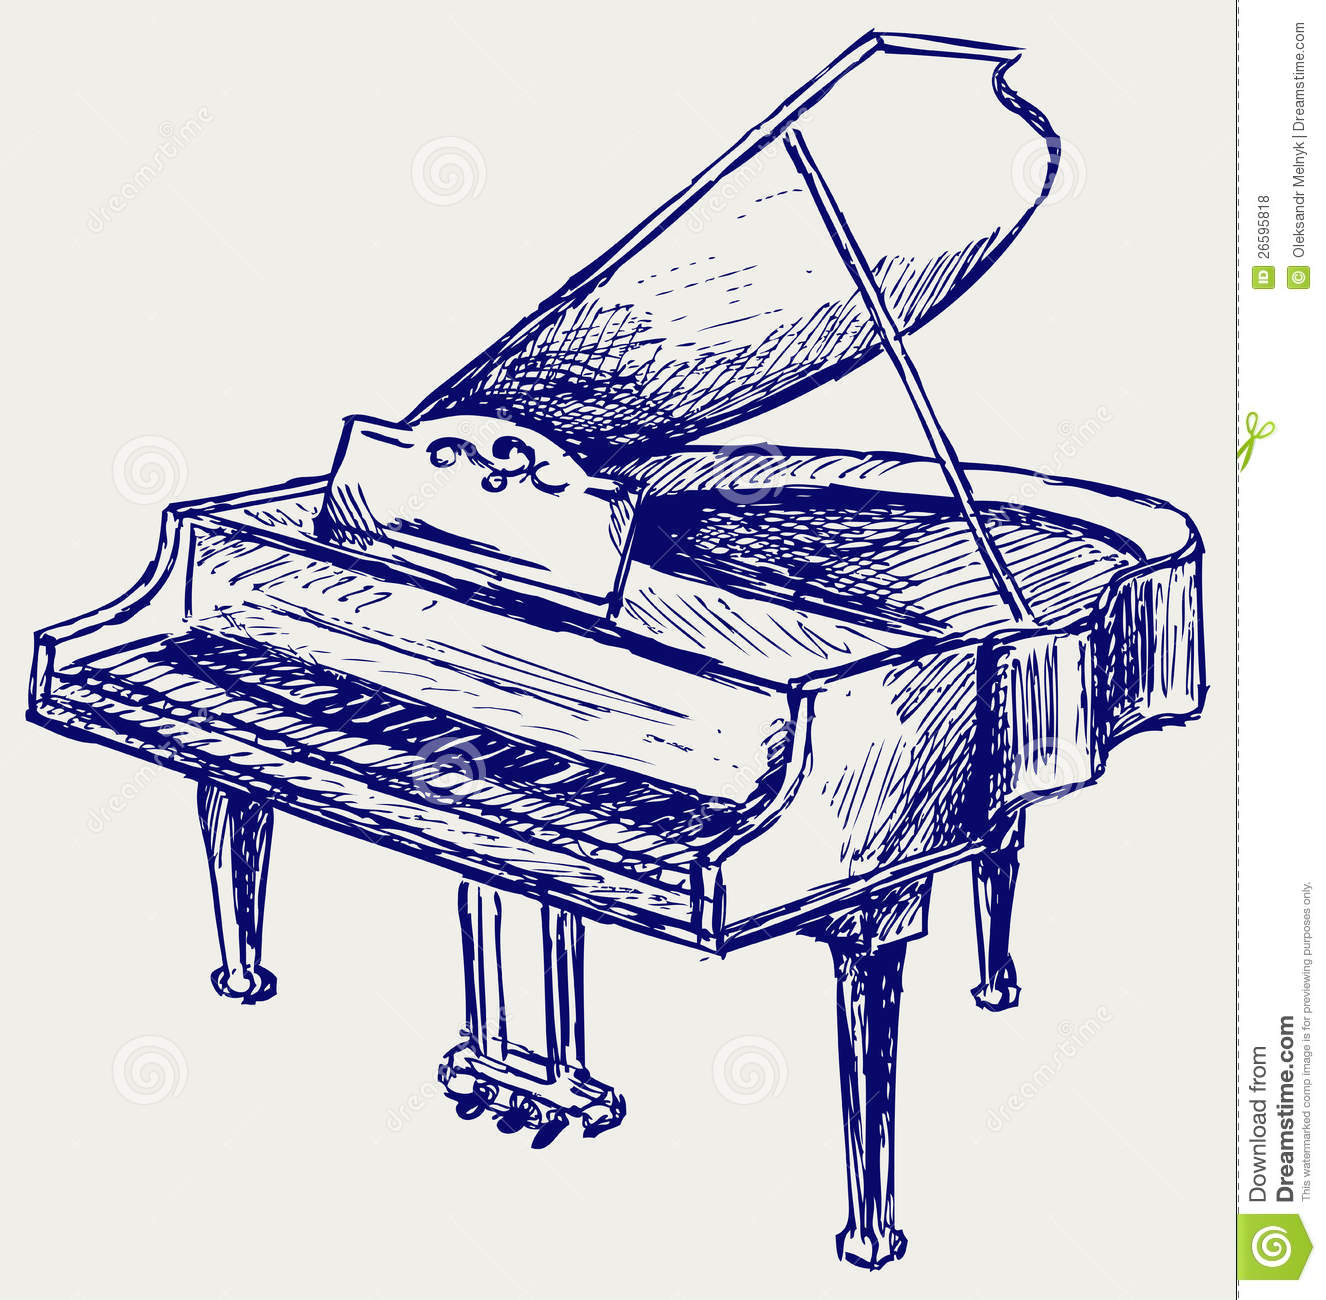 Piano Sketch Royalty Free Stock Photos - Image: 26595818